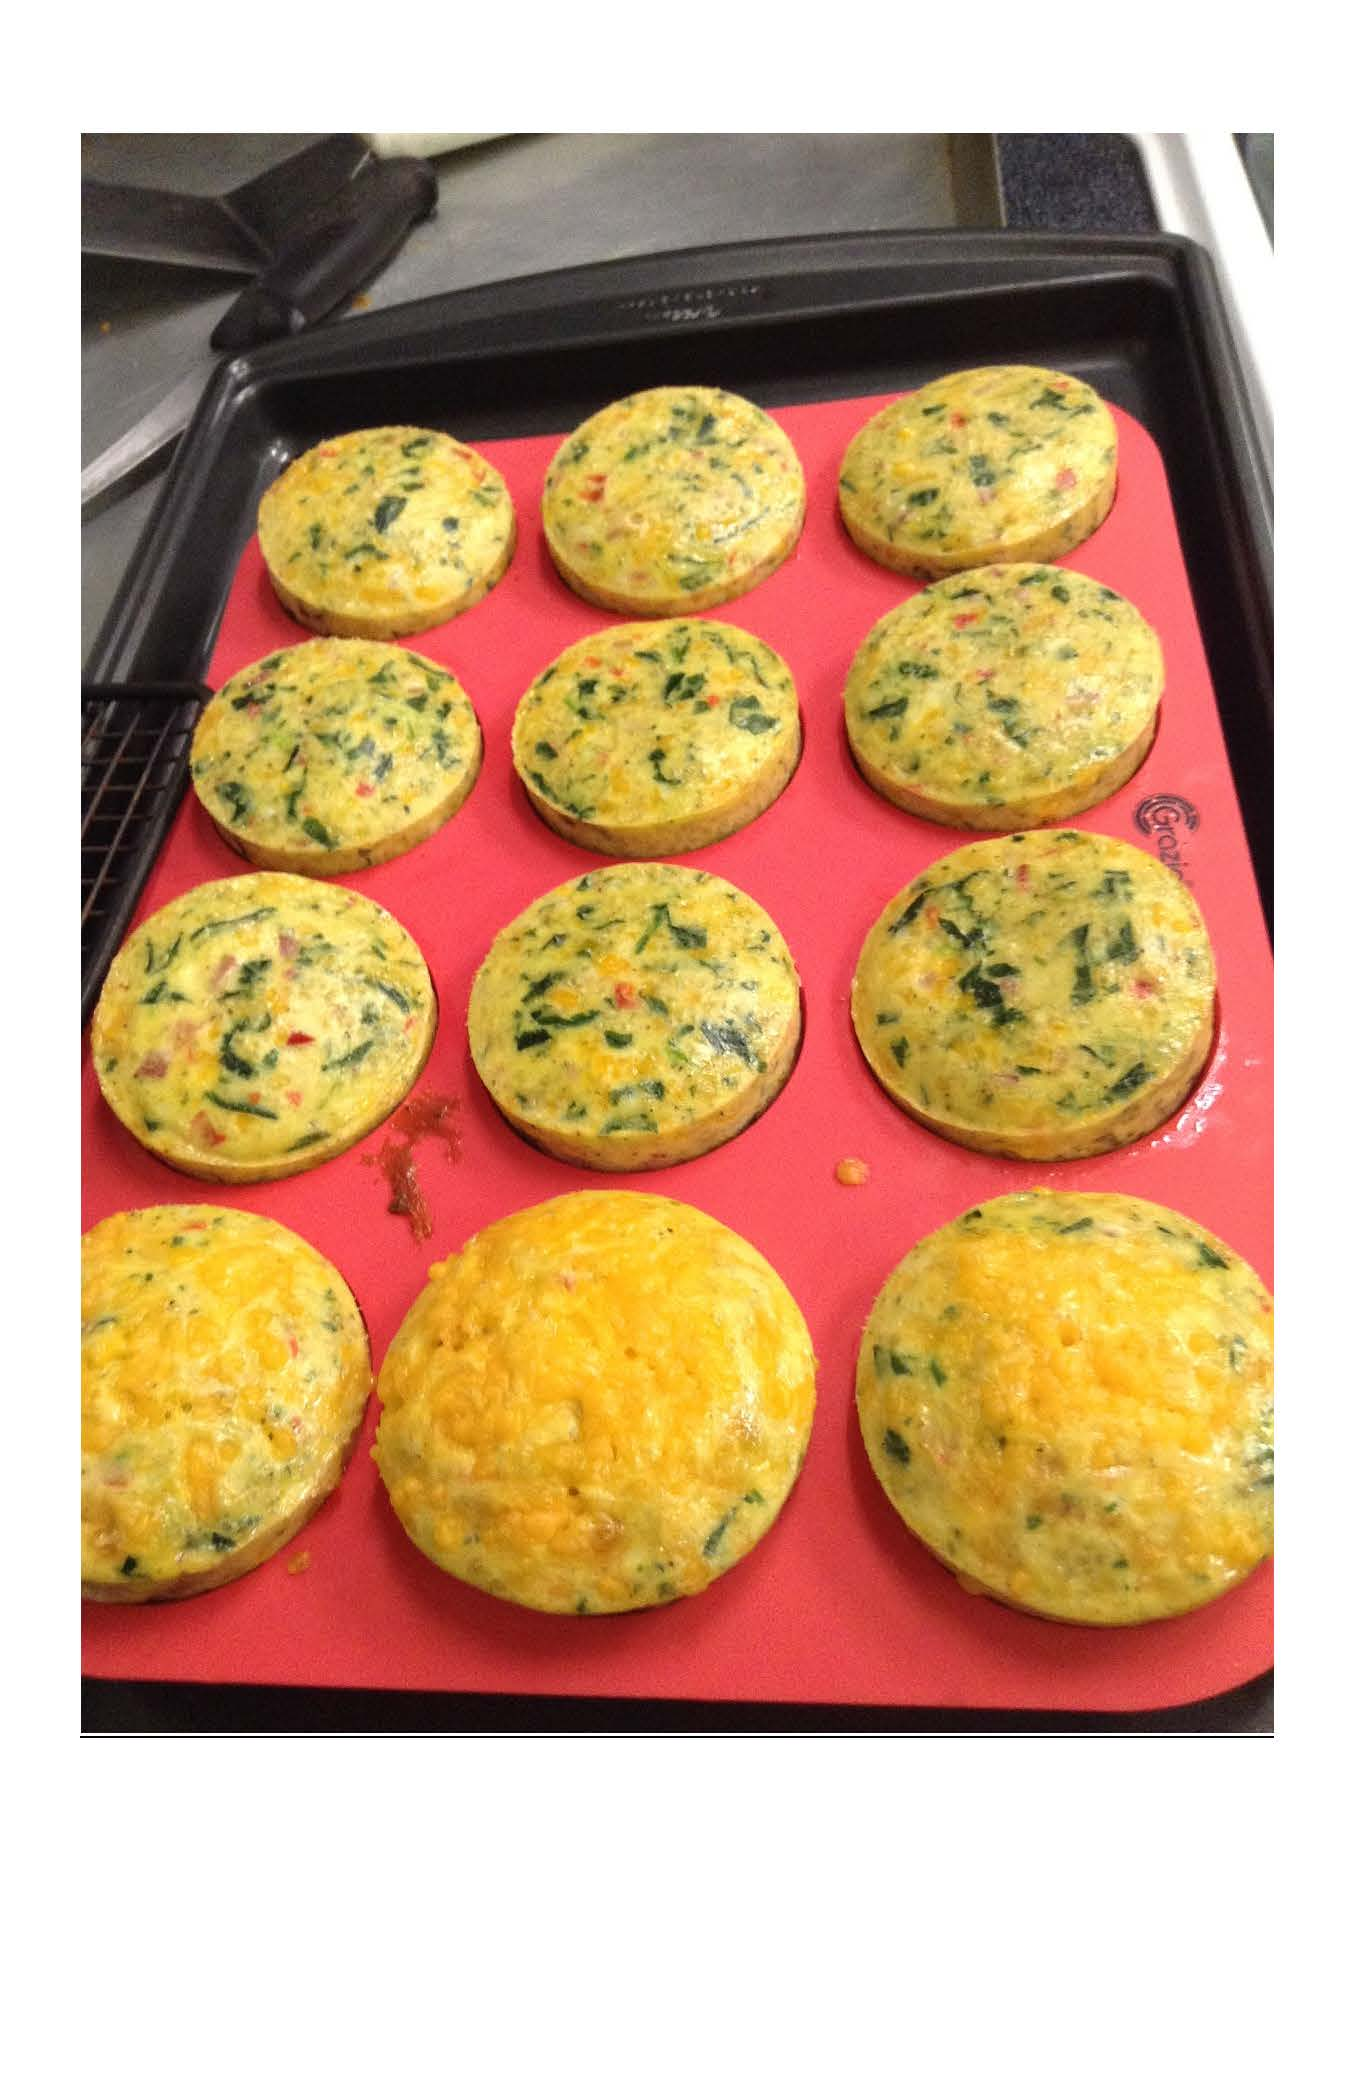 University of Georgia food science students have been awarded first place by the DuPont Company for their creation of a new breakfast muffin. The muffin does not contain bread. Instead, it's made of quinoa, ham and eggs and is similar to quiche.